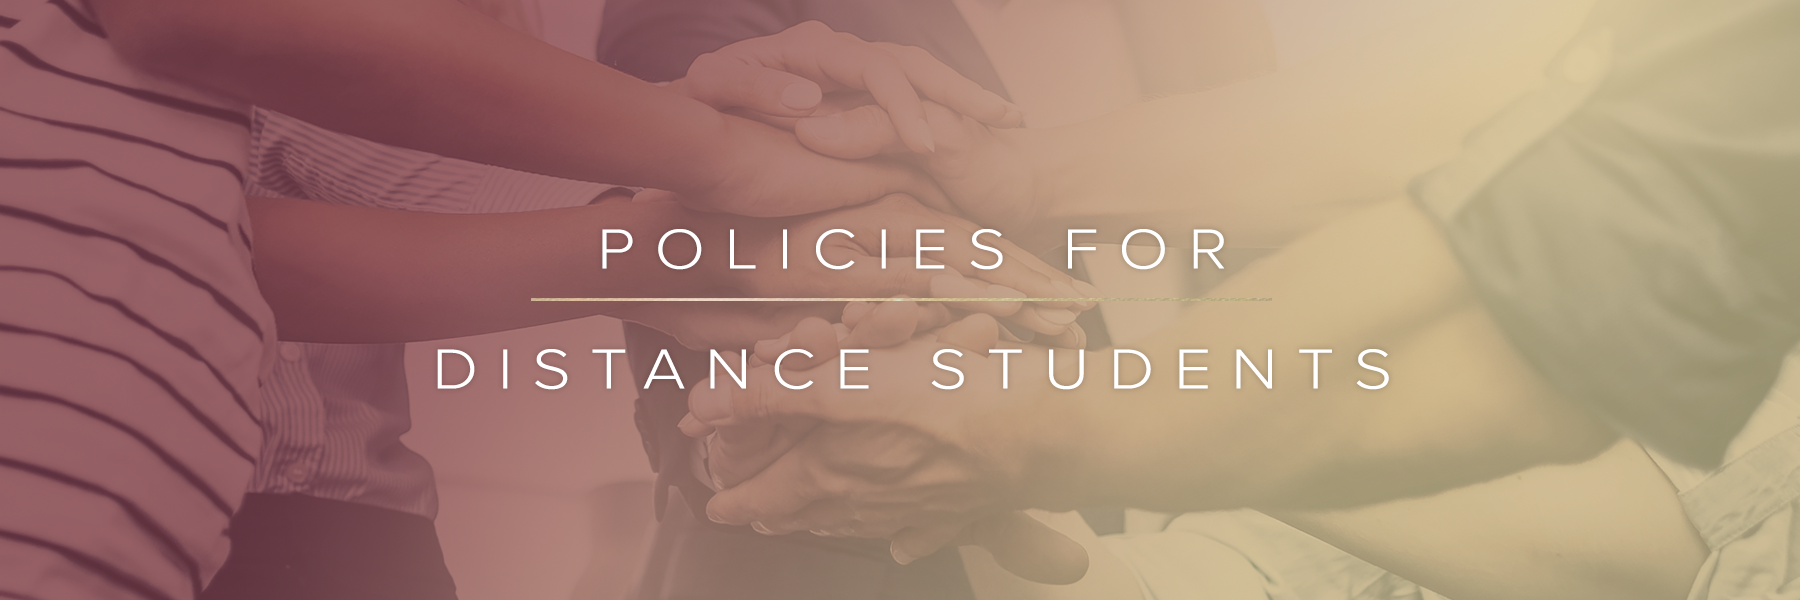 Policies for Distance Students